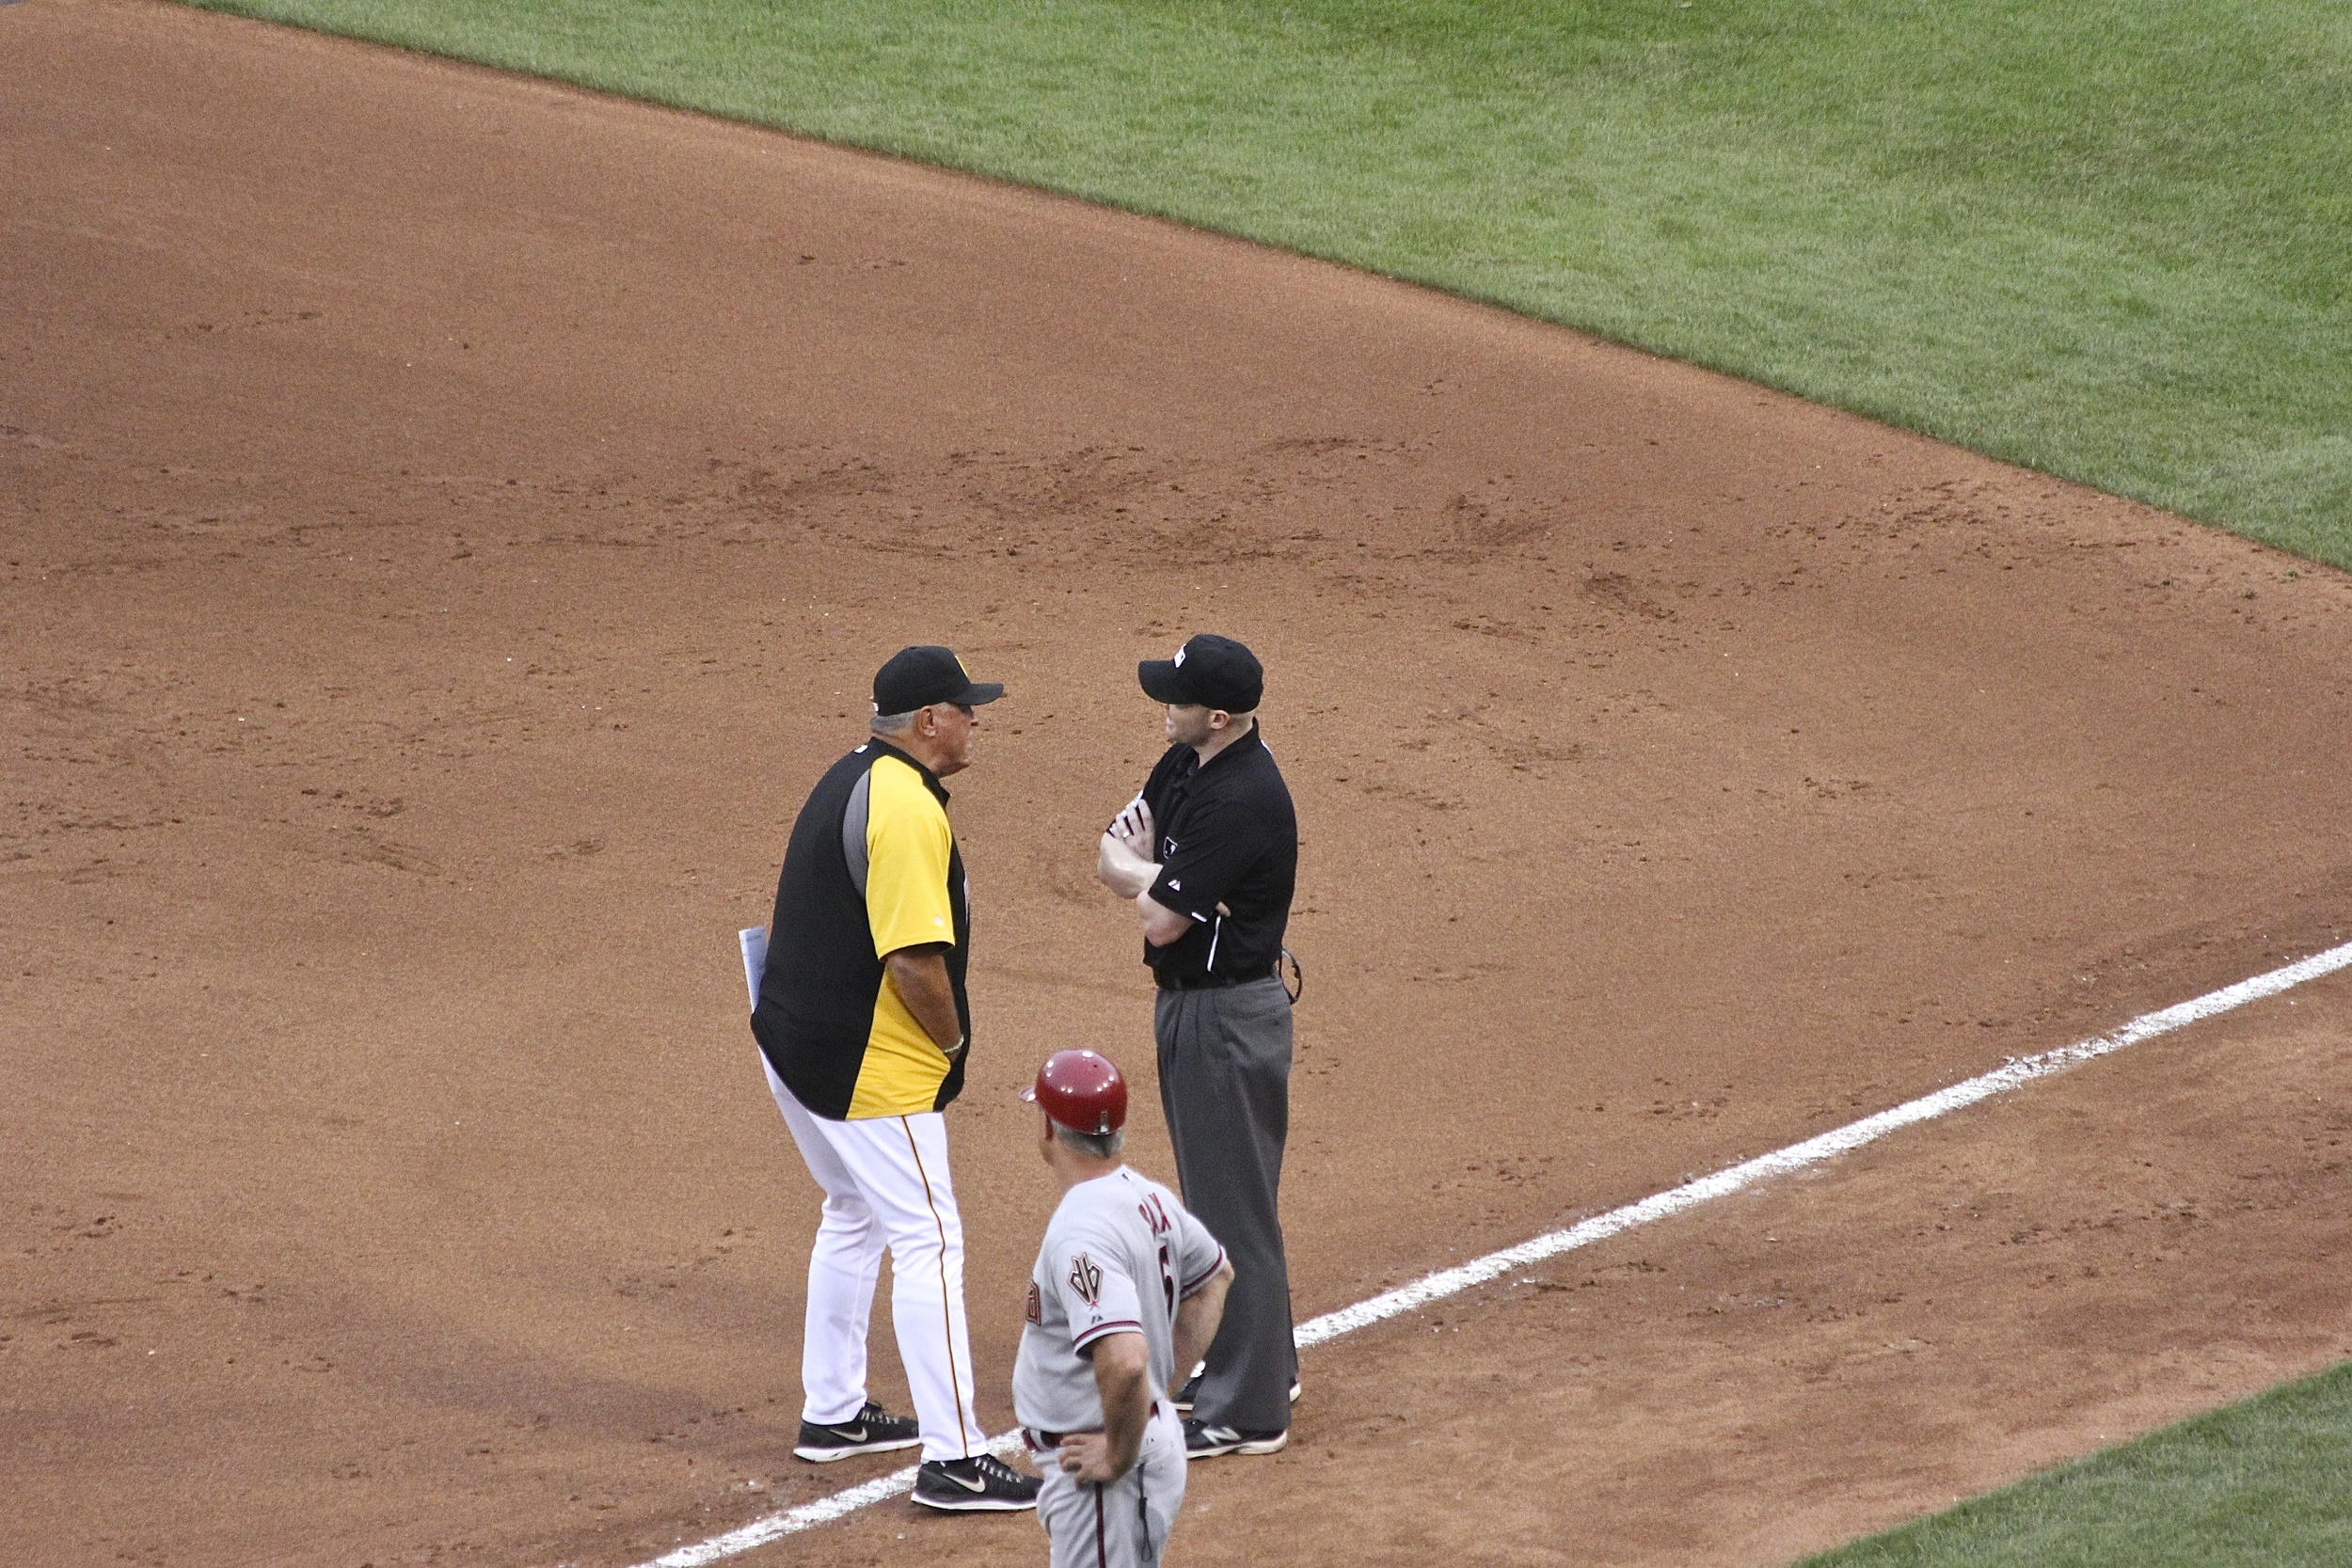 Clint Hurdle has a chat withMike Estabrook